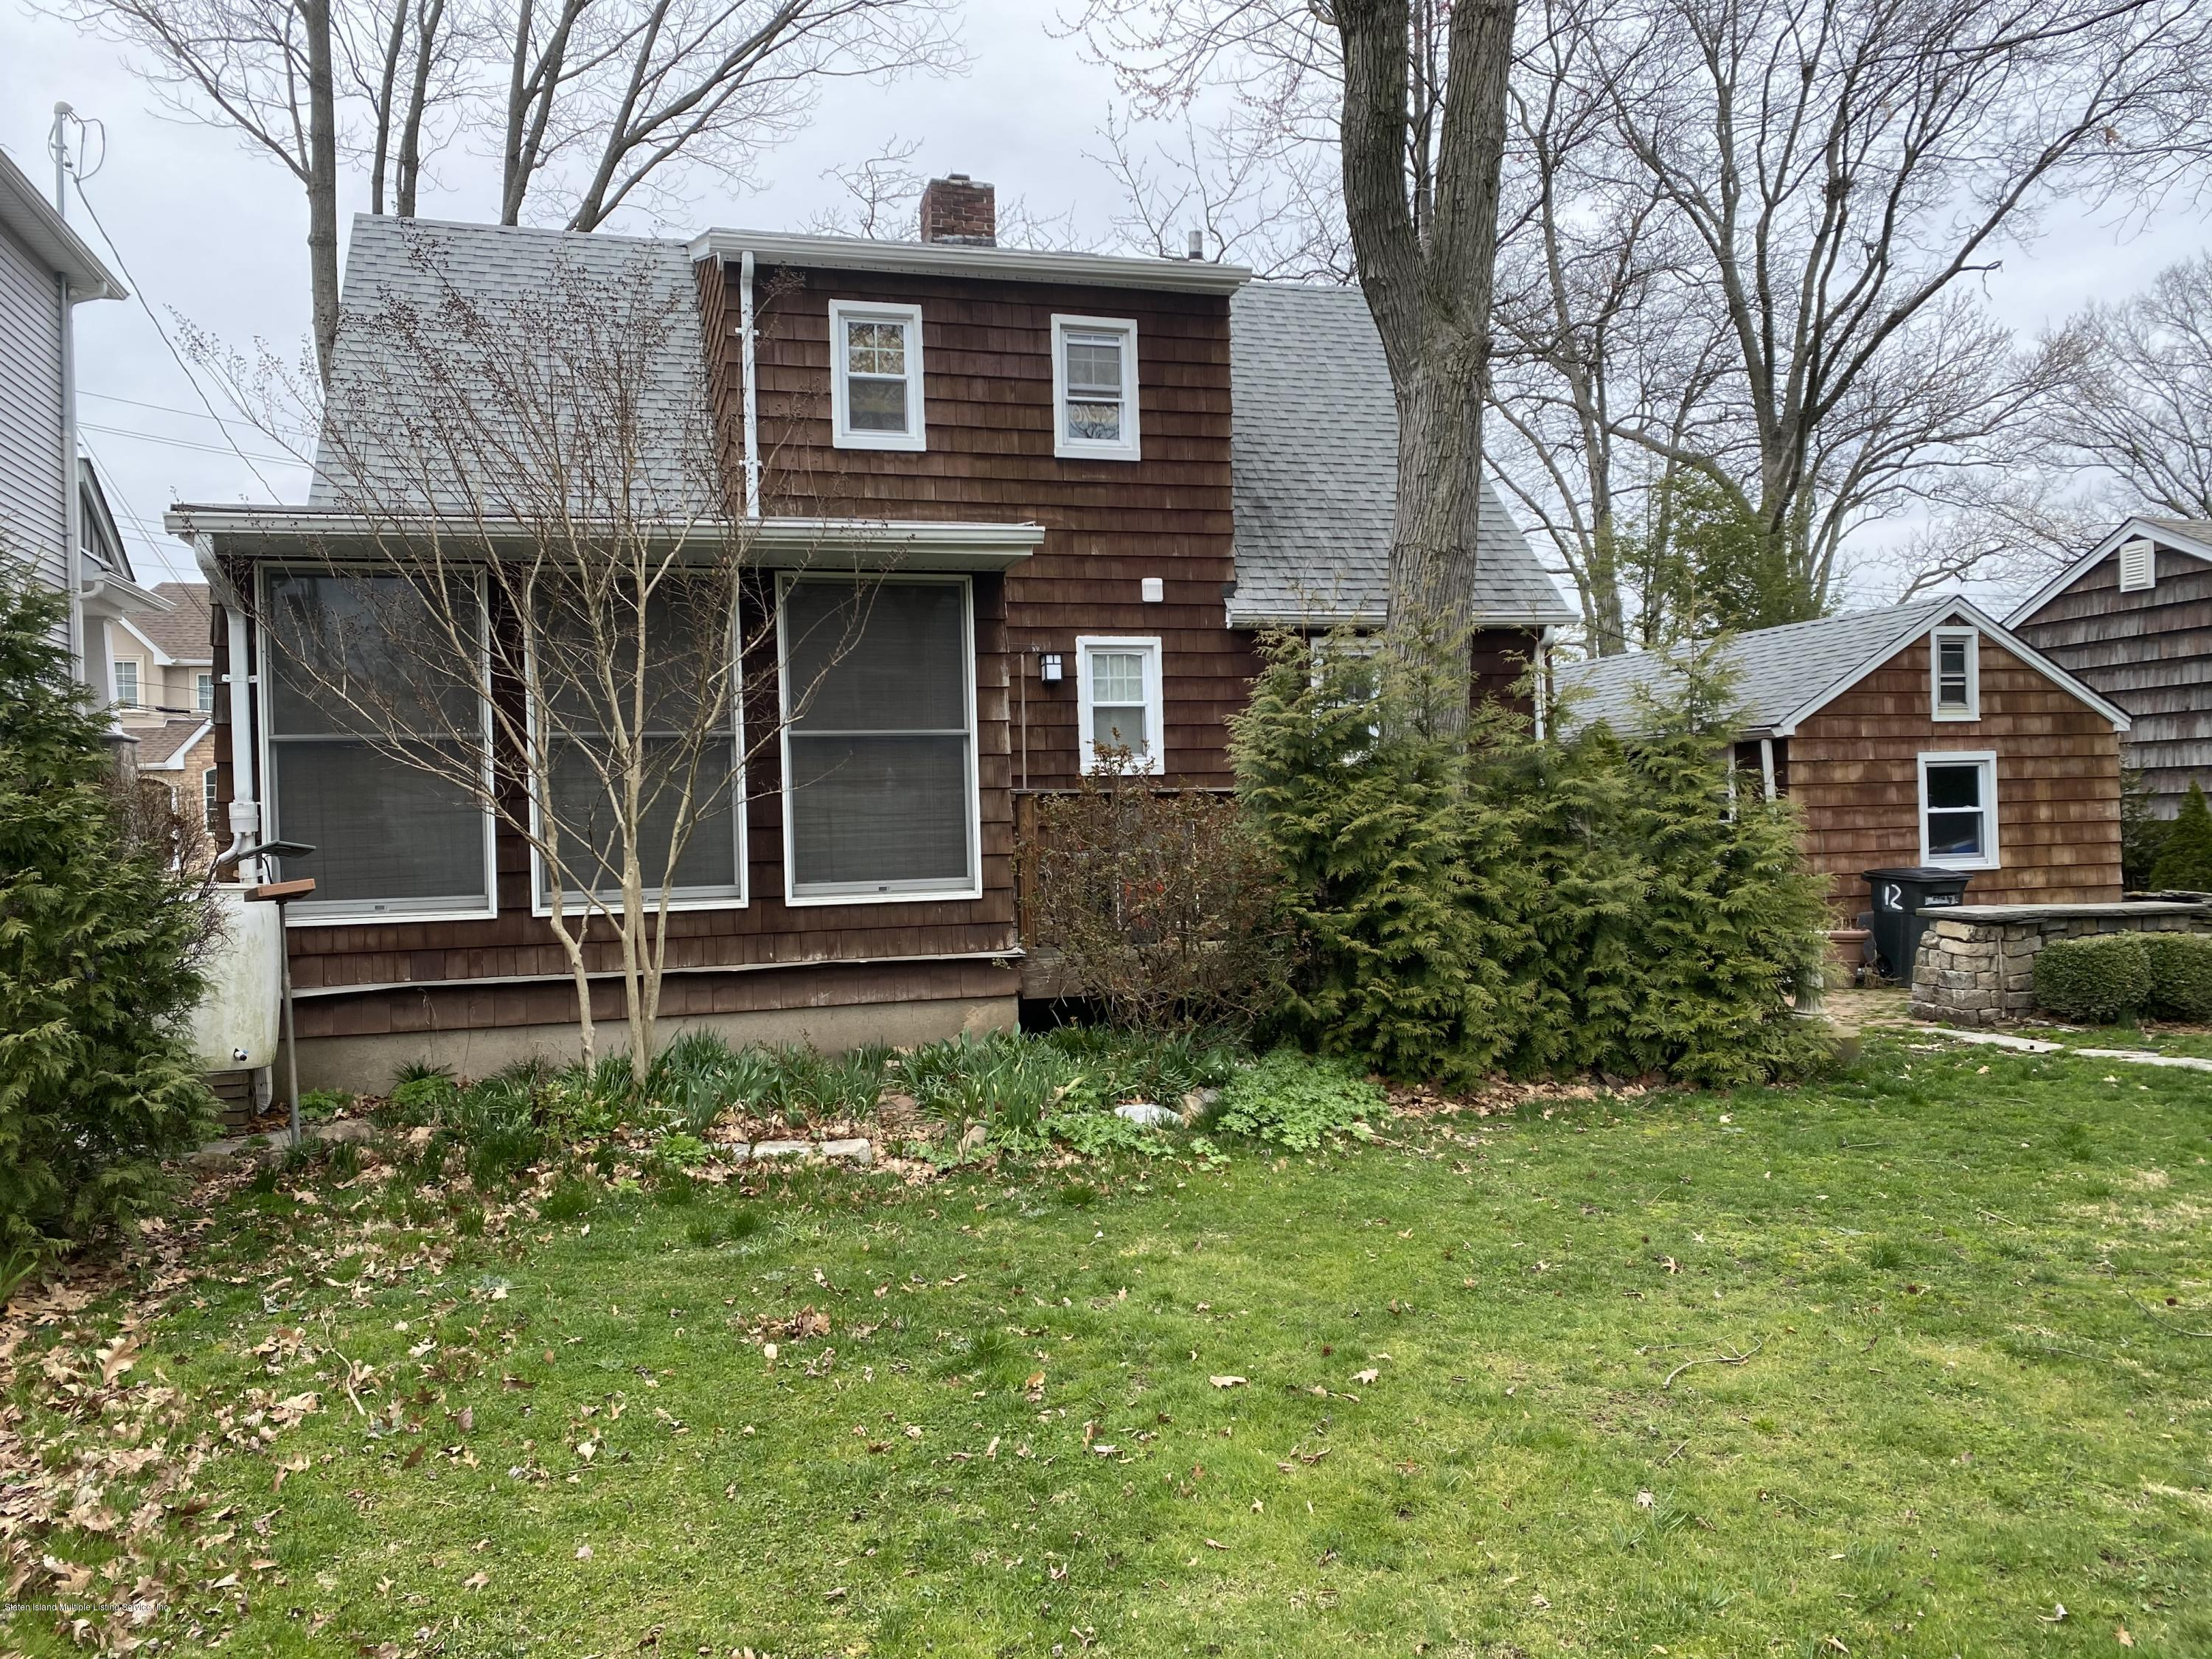 Single Family - Detached 78 Serrell Avenue  Staten Island, NY 10312, MLS-1136539-23